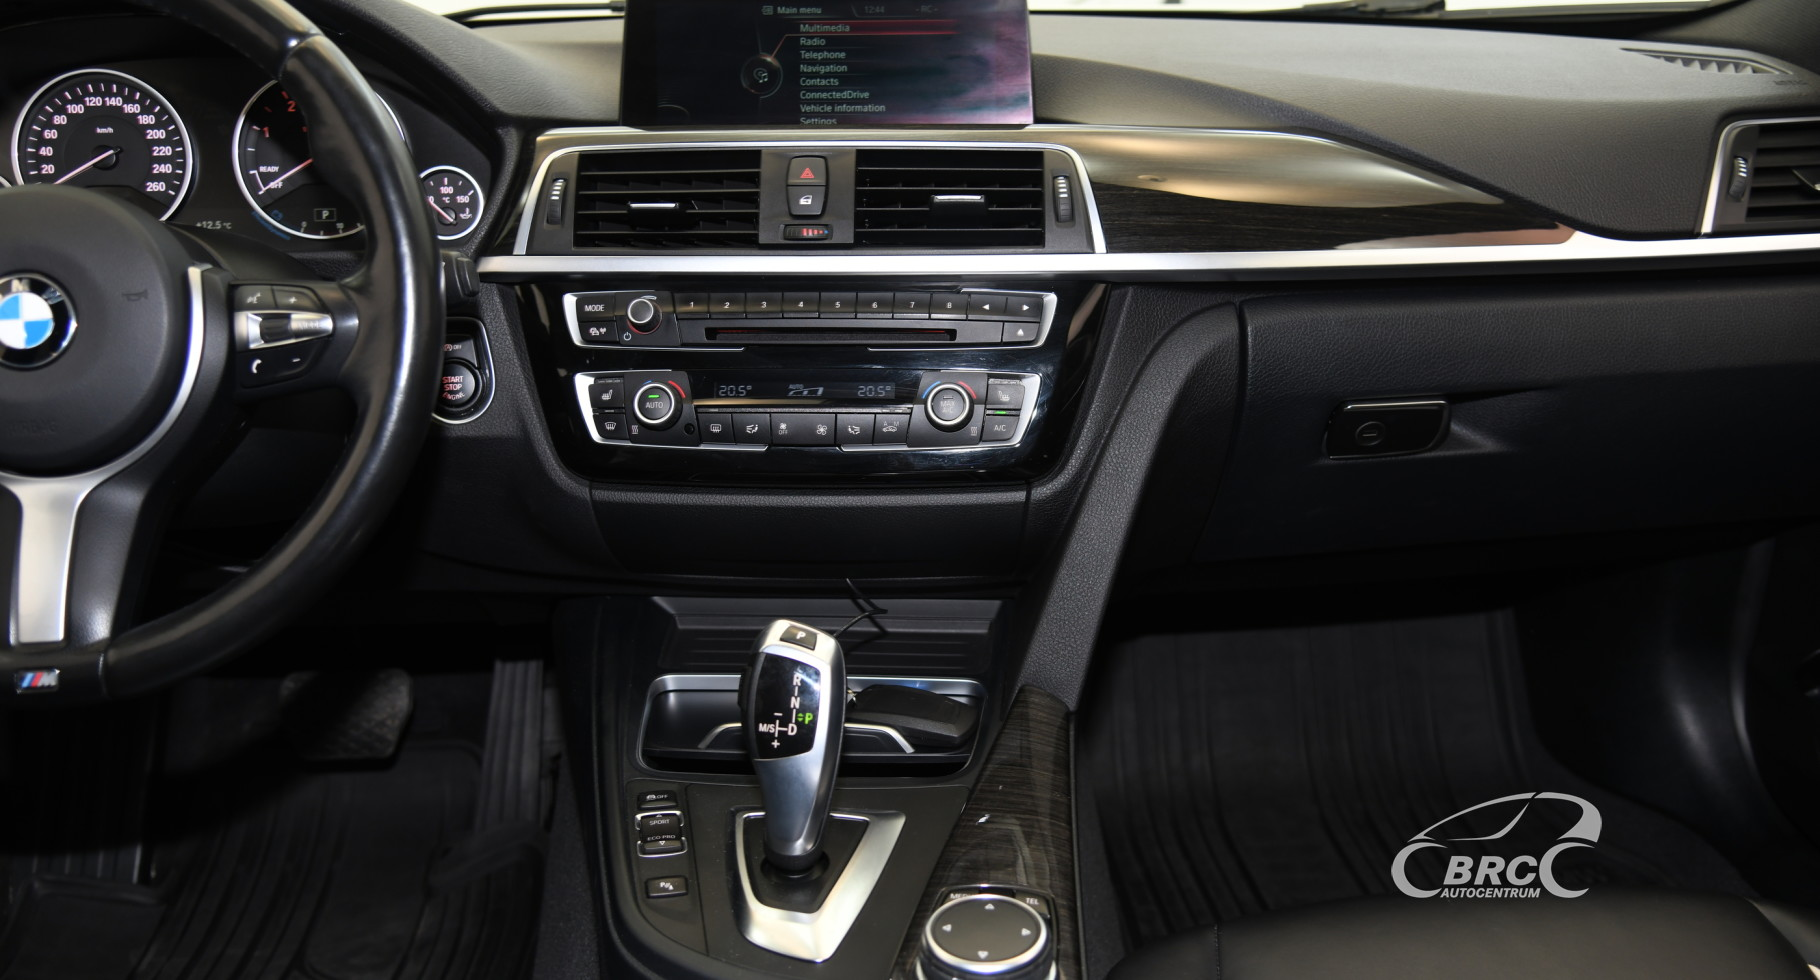 BMW 335 d xDrive Individual Luxury Automatas